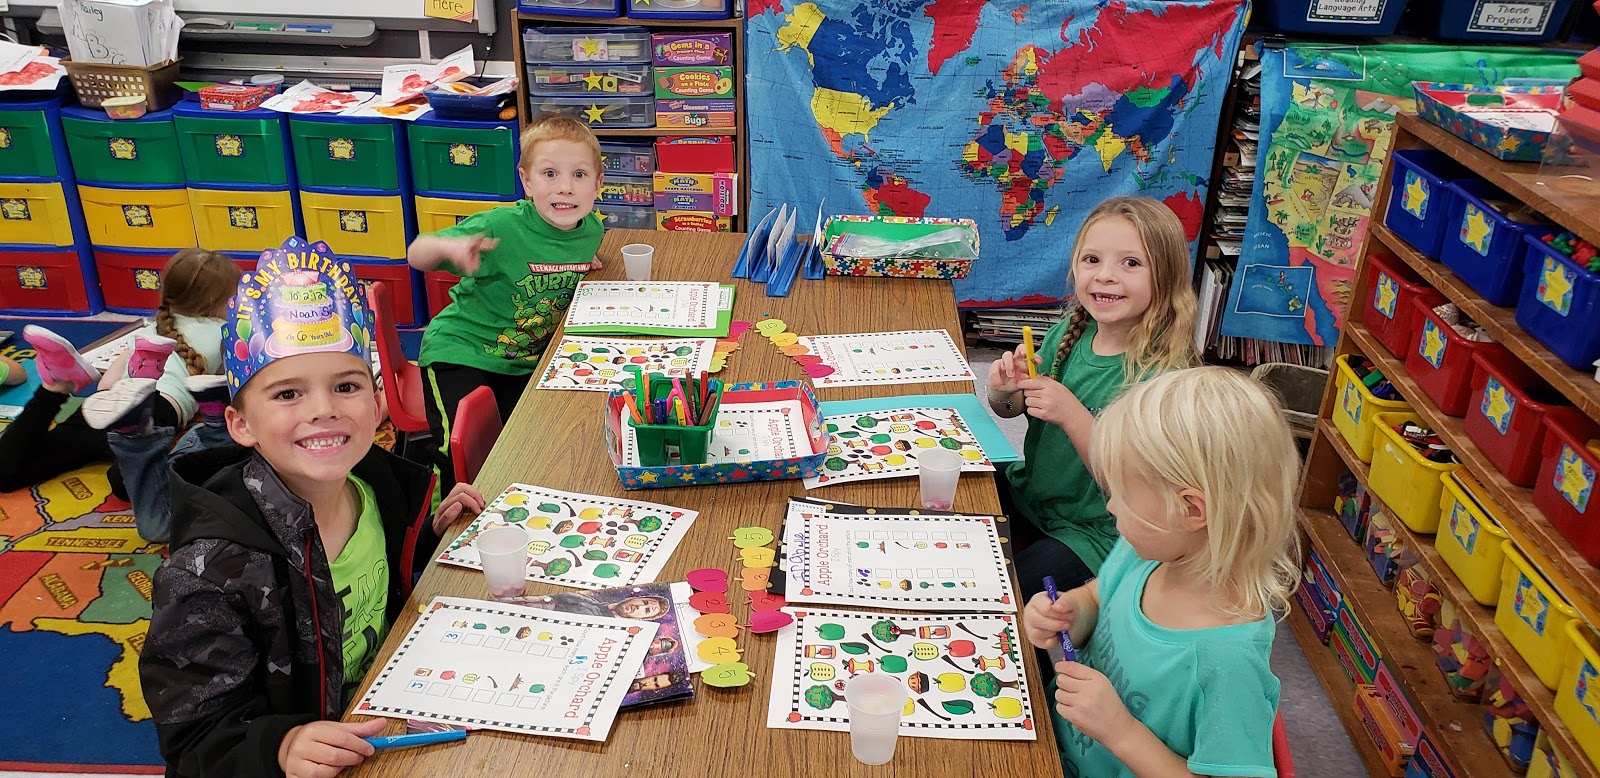 Mrs O S Kindergarten And Family Blog Week 5 Letters Mm Nn Oo Pp Fall Themes